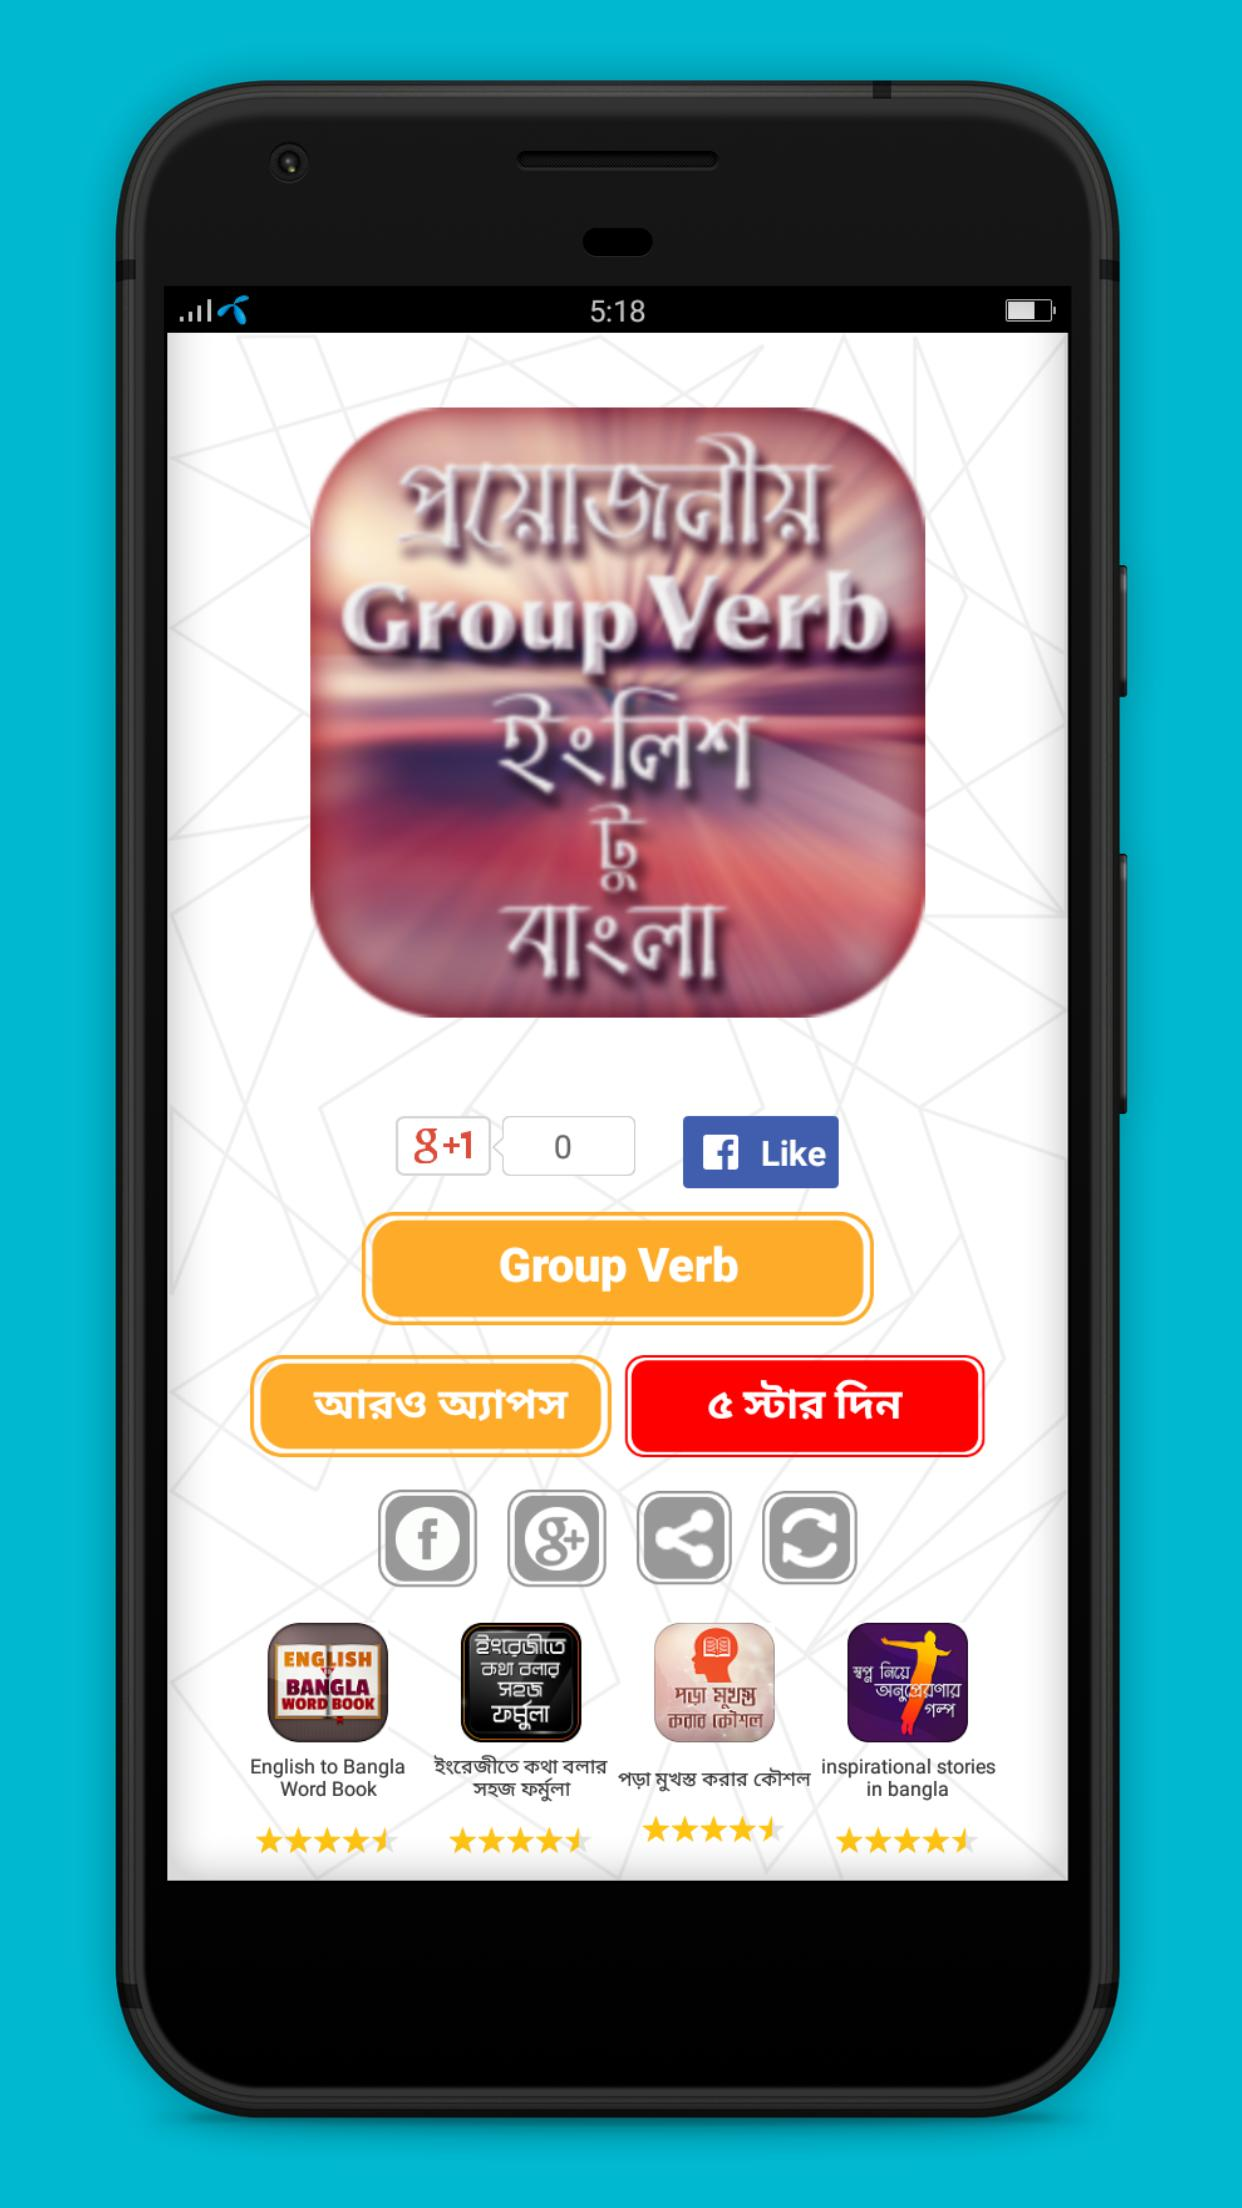 Group Verb English to Bengali for Android - APK Download